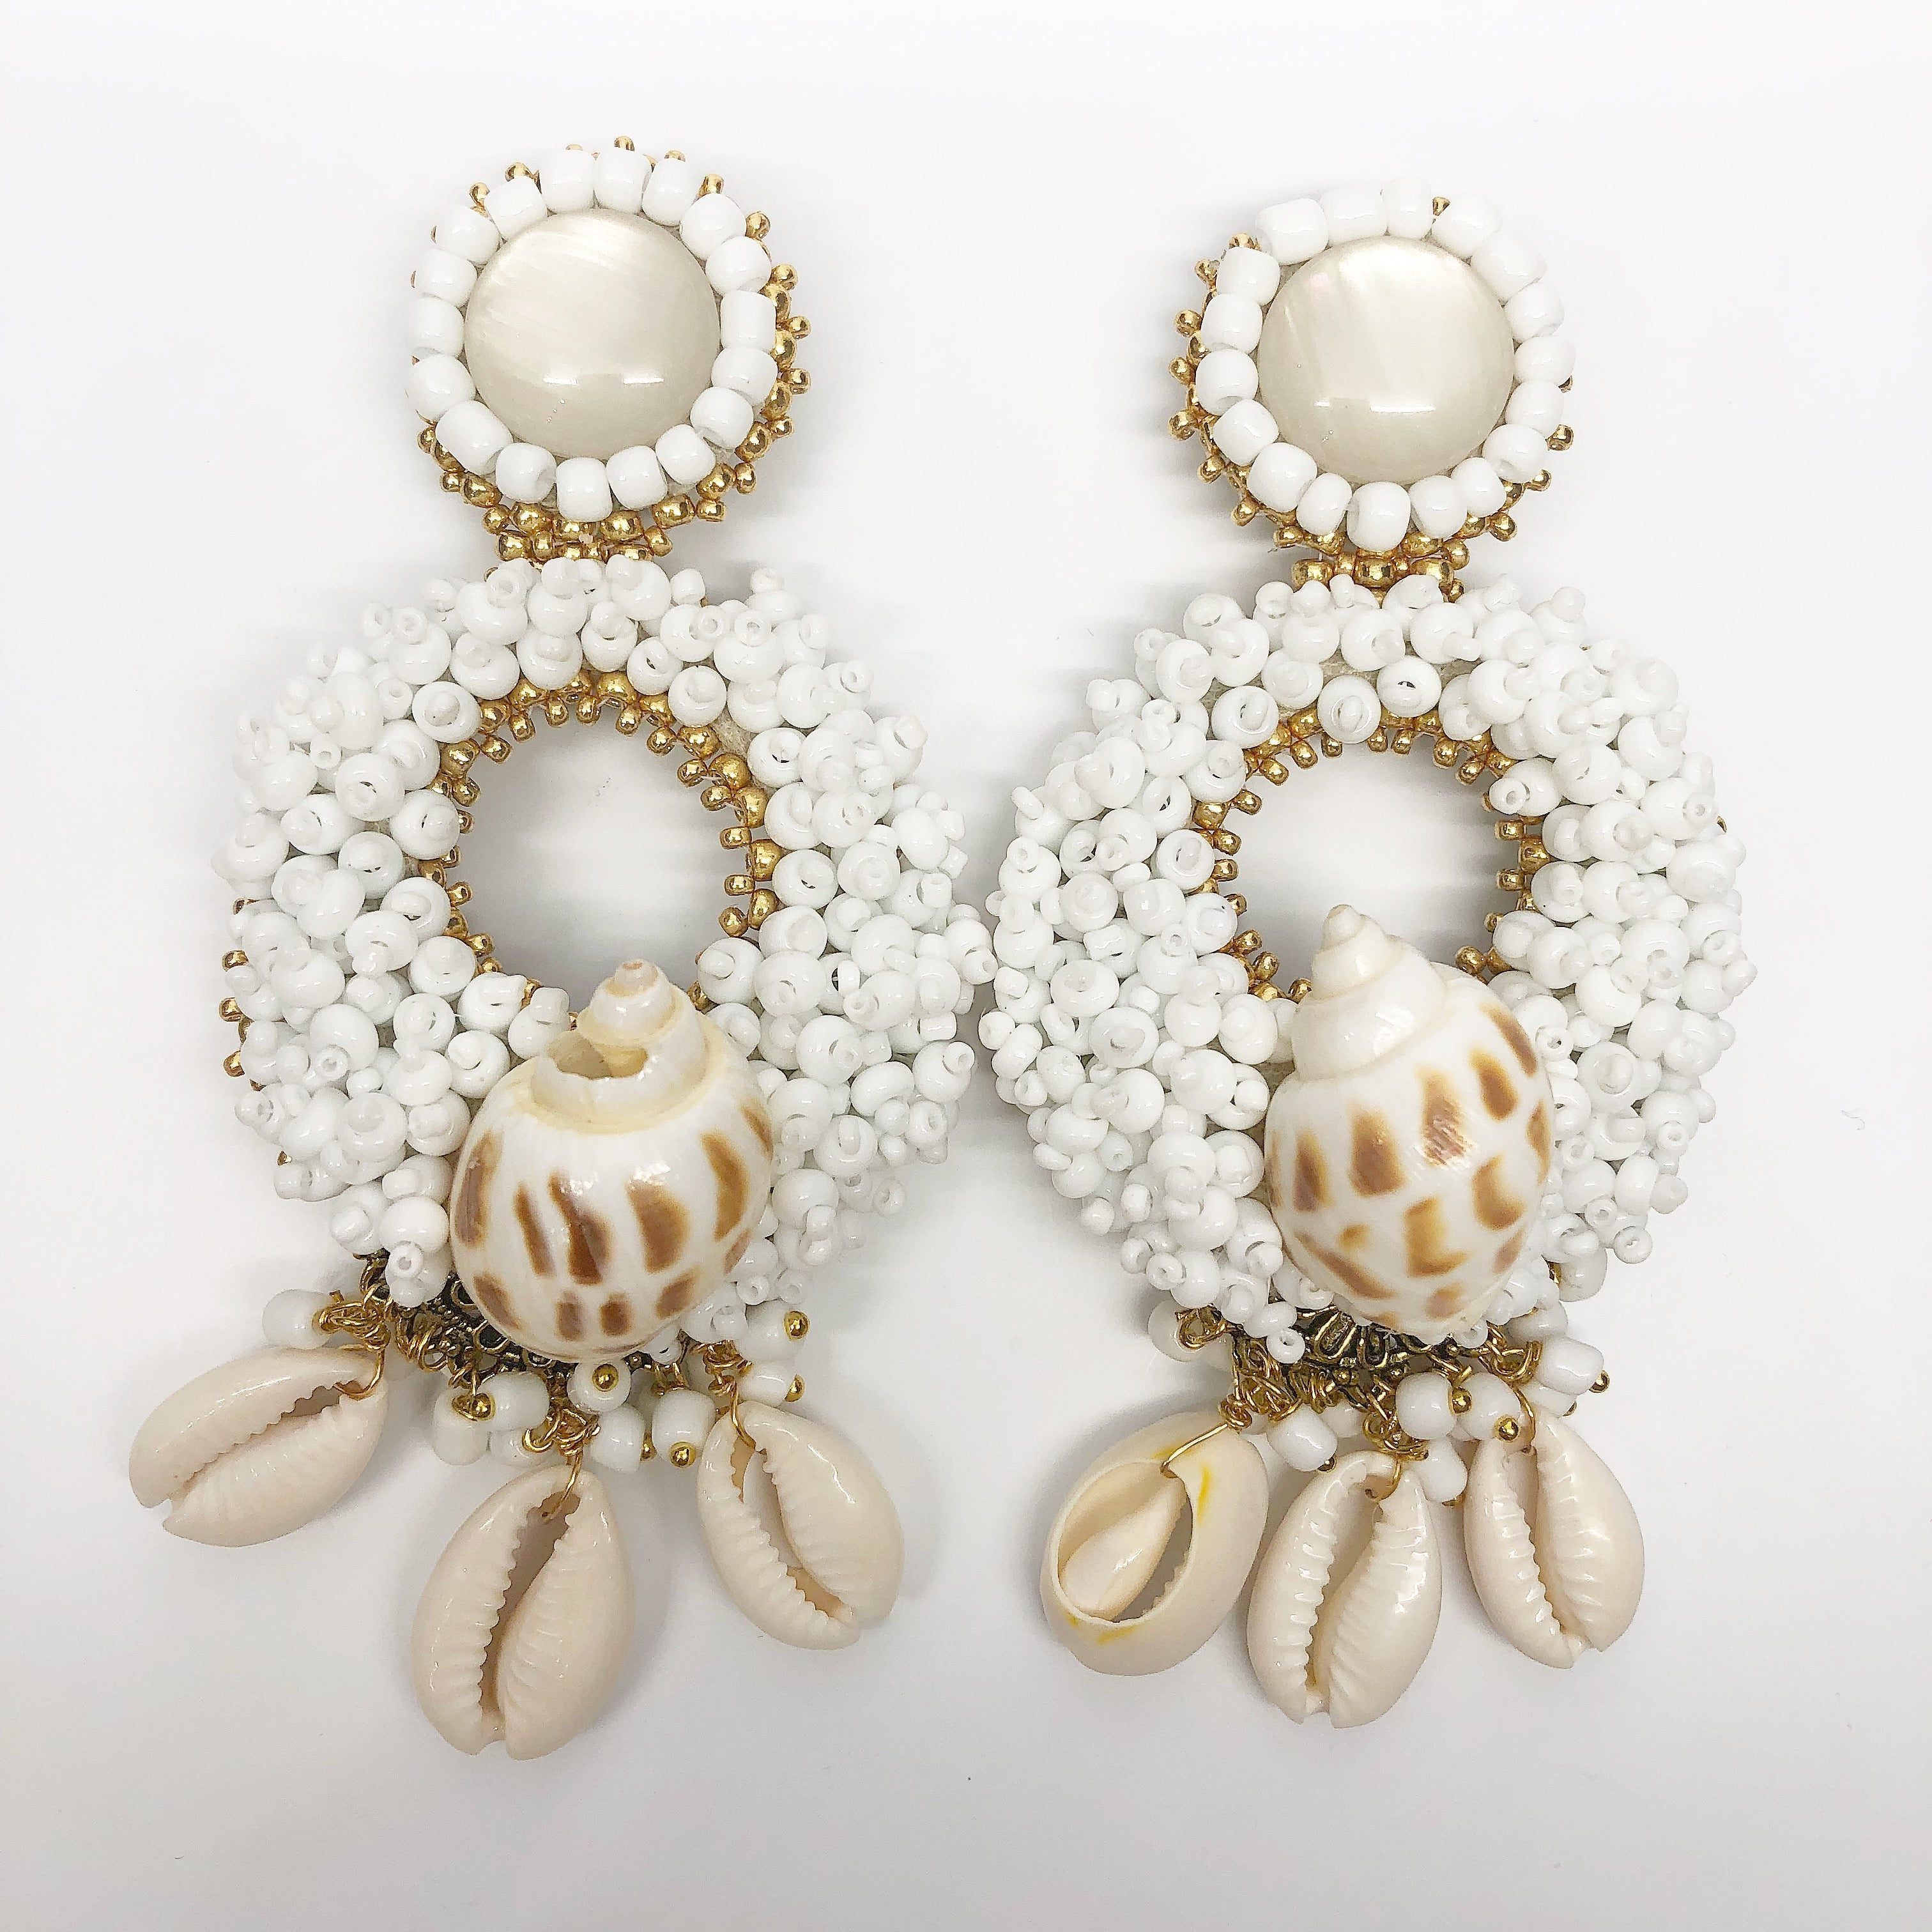 rock + bone handmade statement earrings Alegra Charms